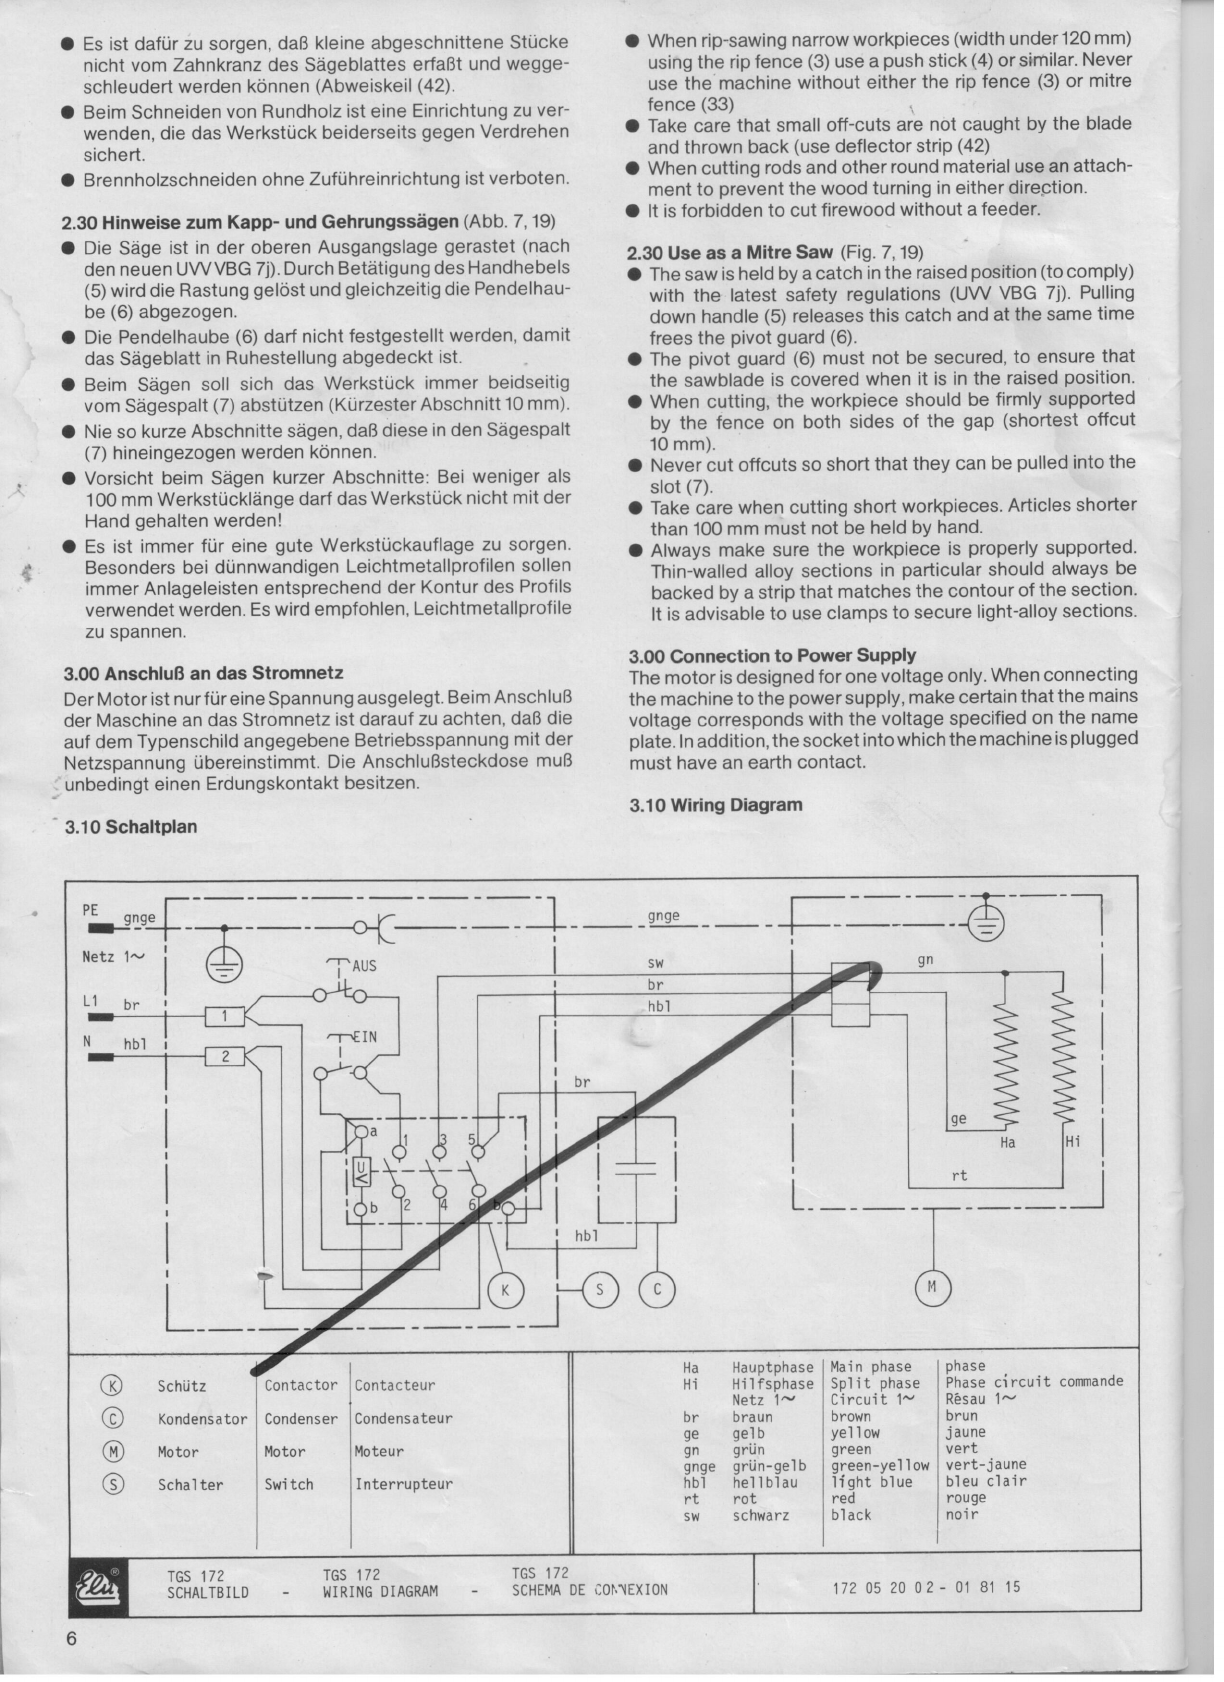 Manual elu tgs 172 page 2 of 21 german english french next page keyboard keysfo Images